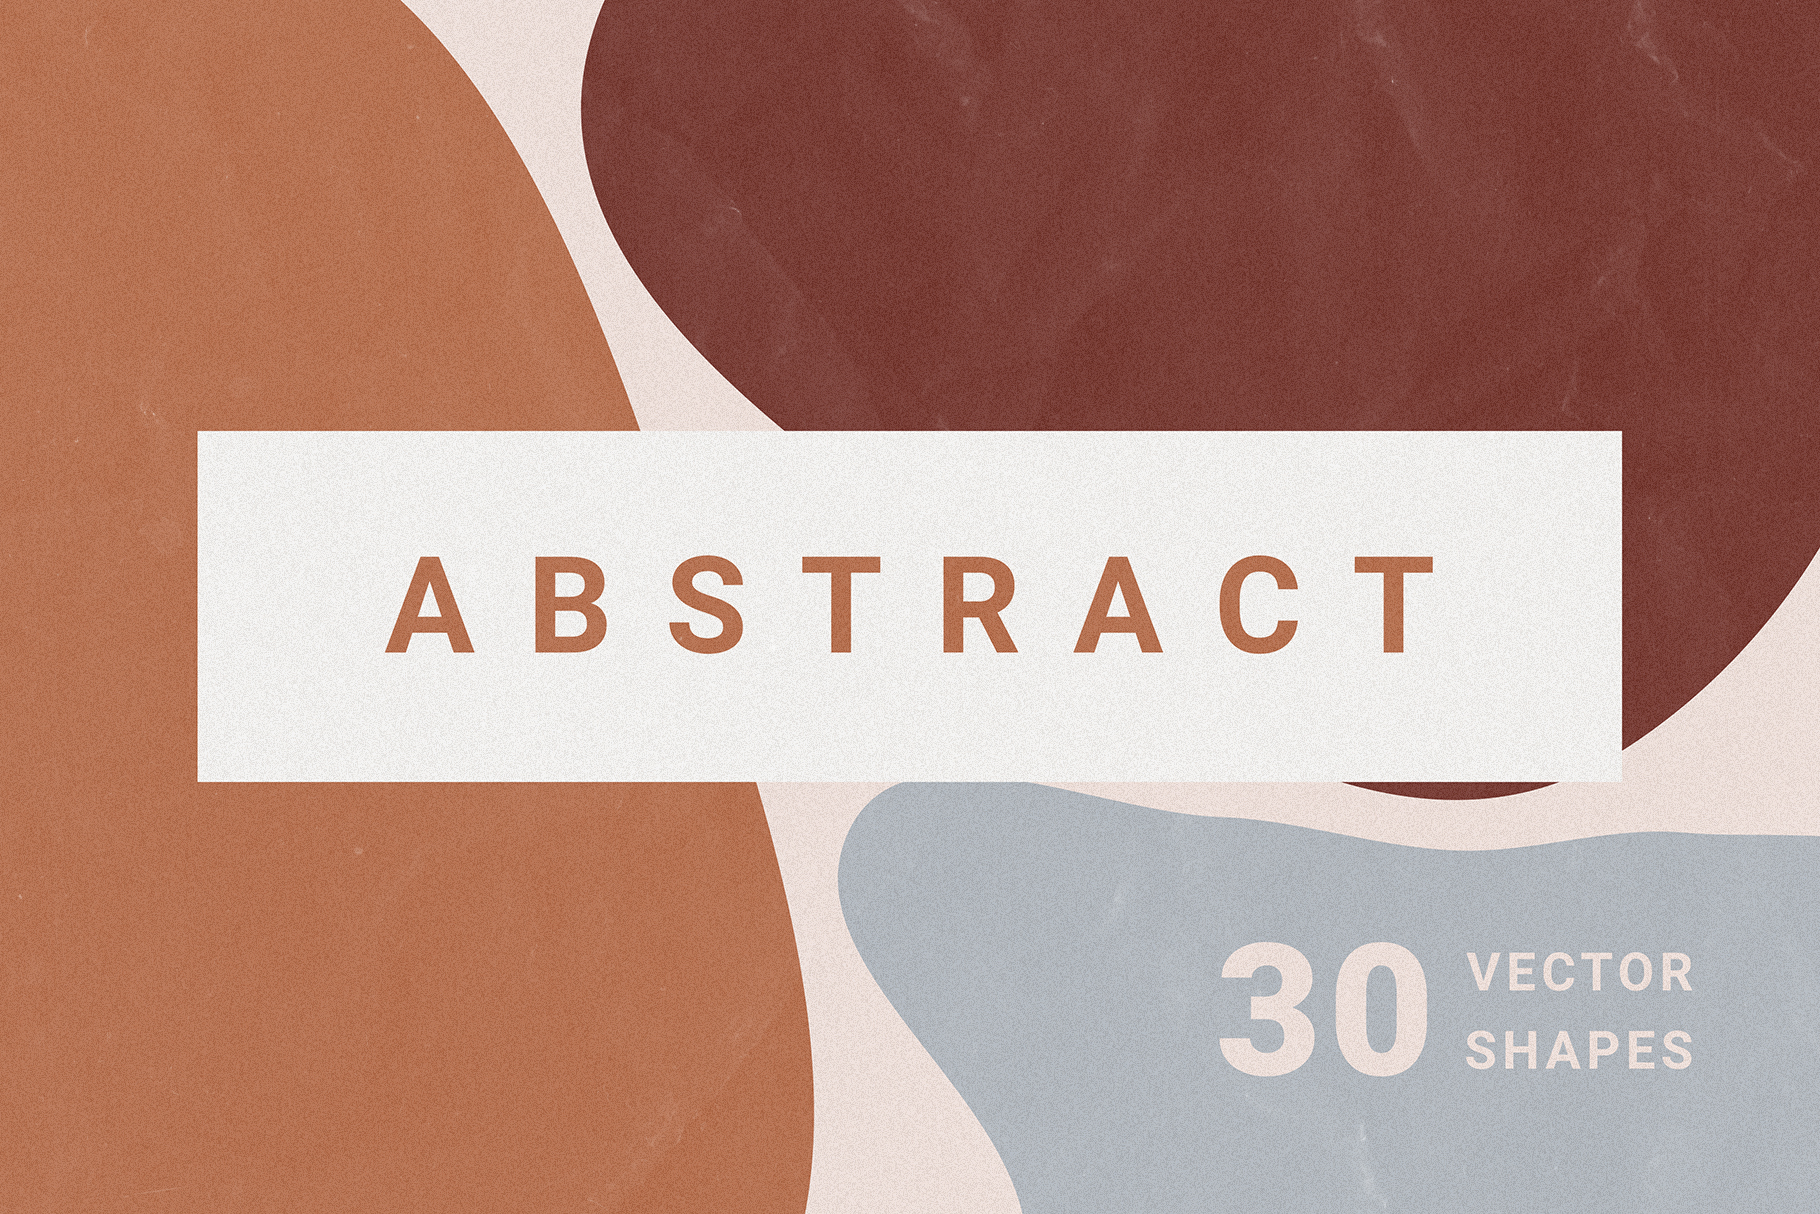 Download Free Abstract Vector Shapes Graphic By Dmitry Mashkin Creative Fabrica for Cricut Explore, Silhouette and other cutting machines.